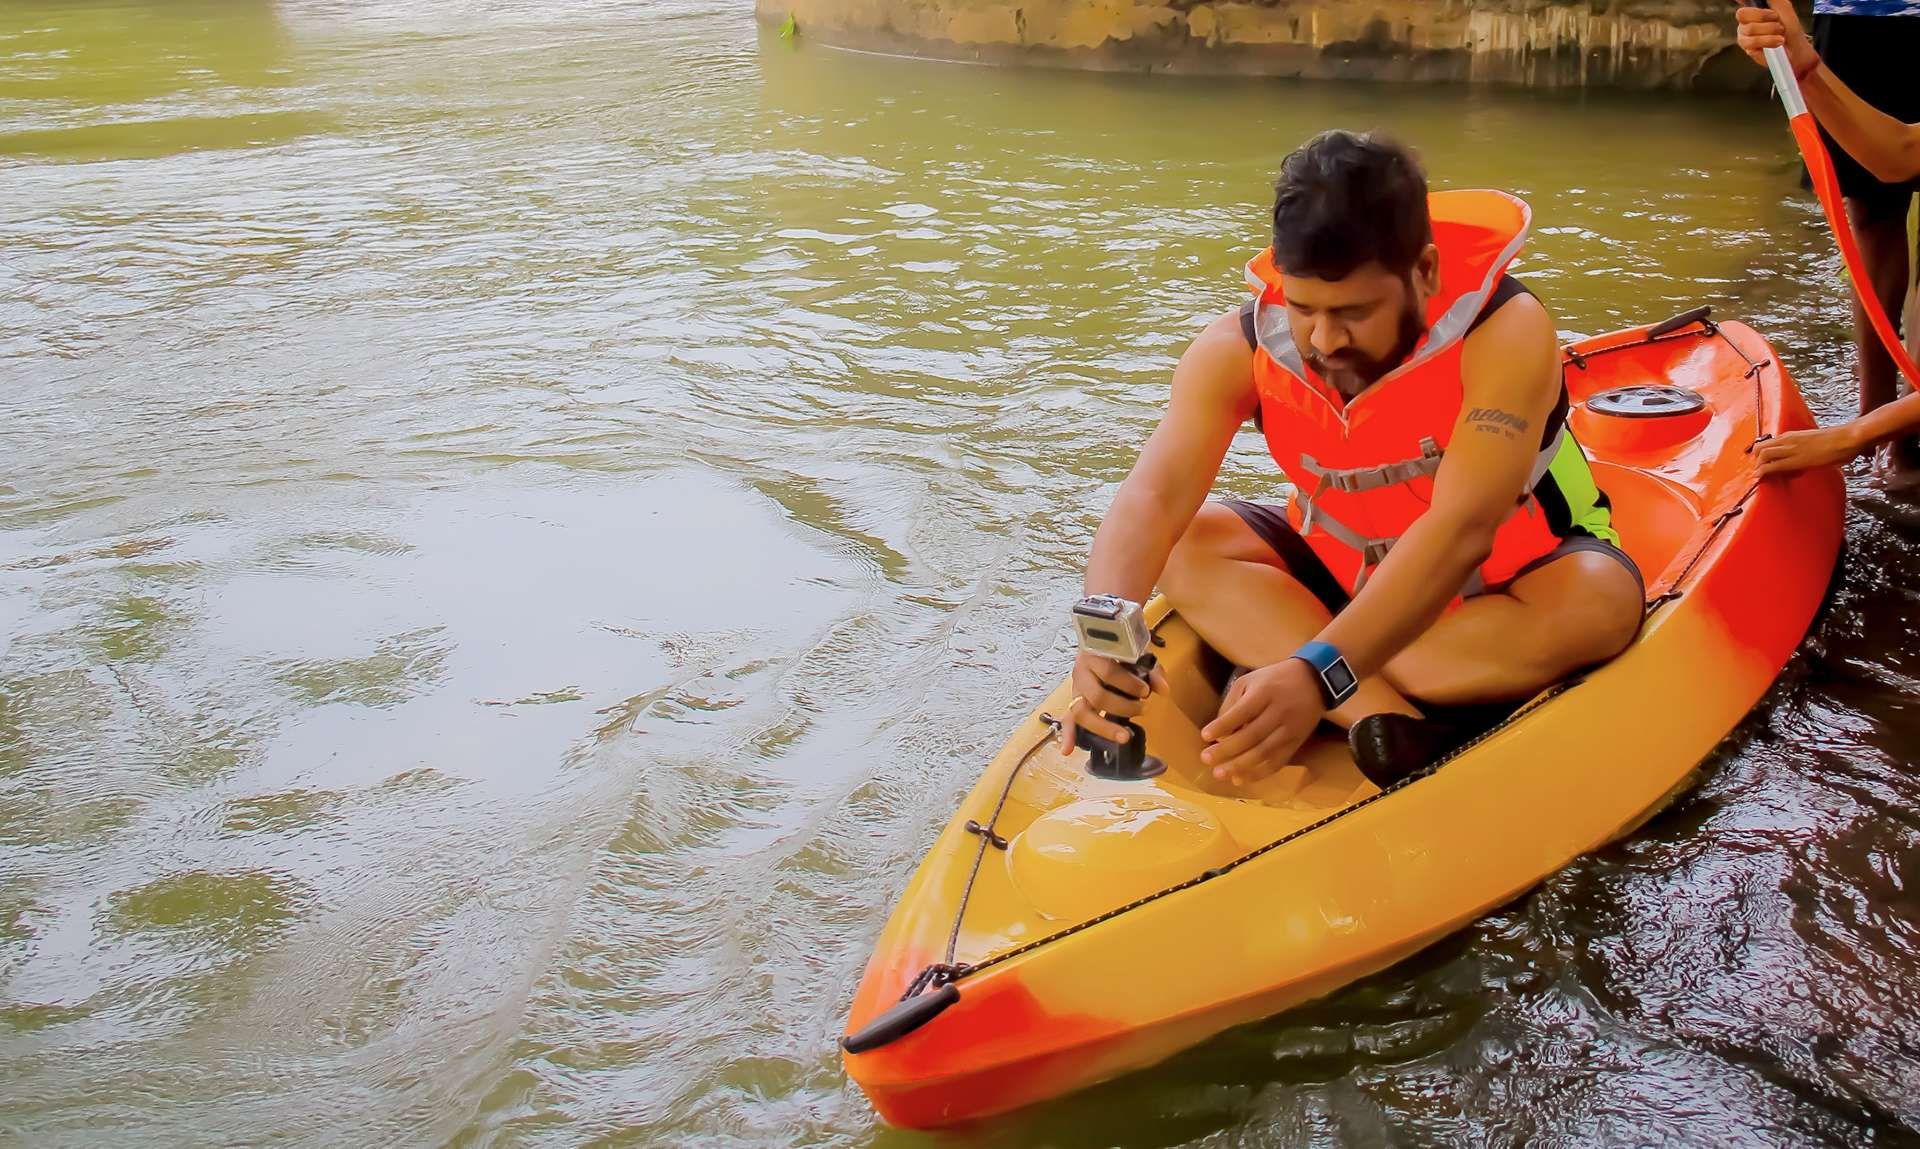 Debasish Sahu mounting a camera to his kayak